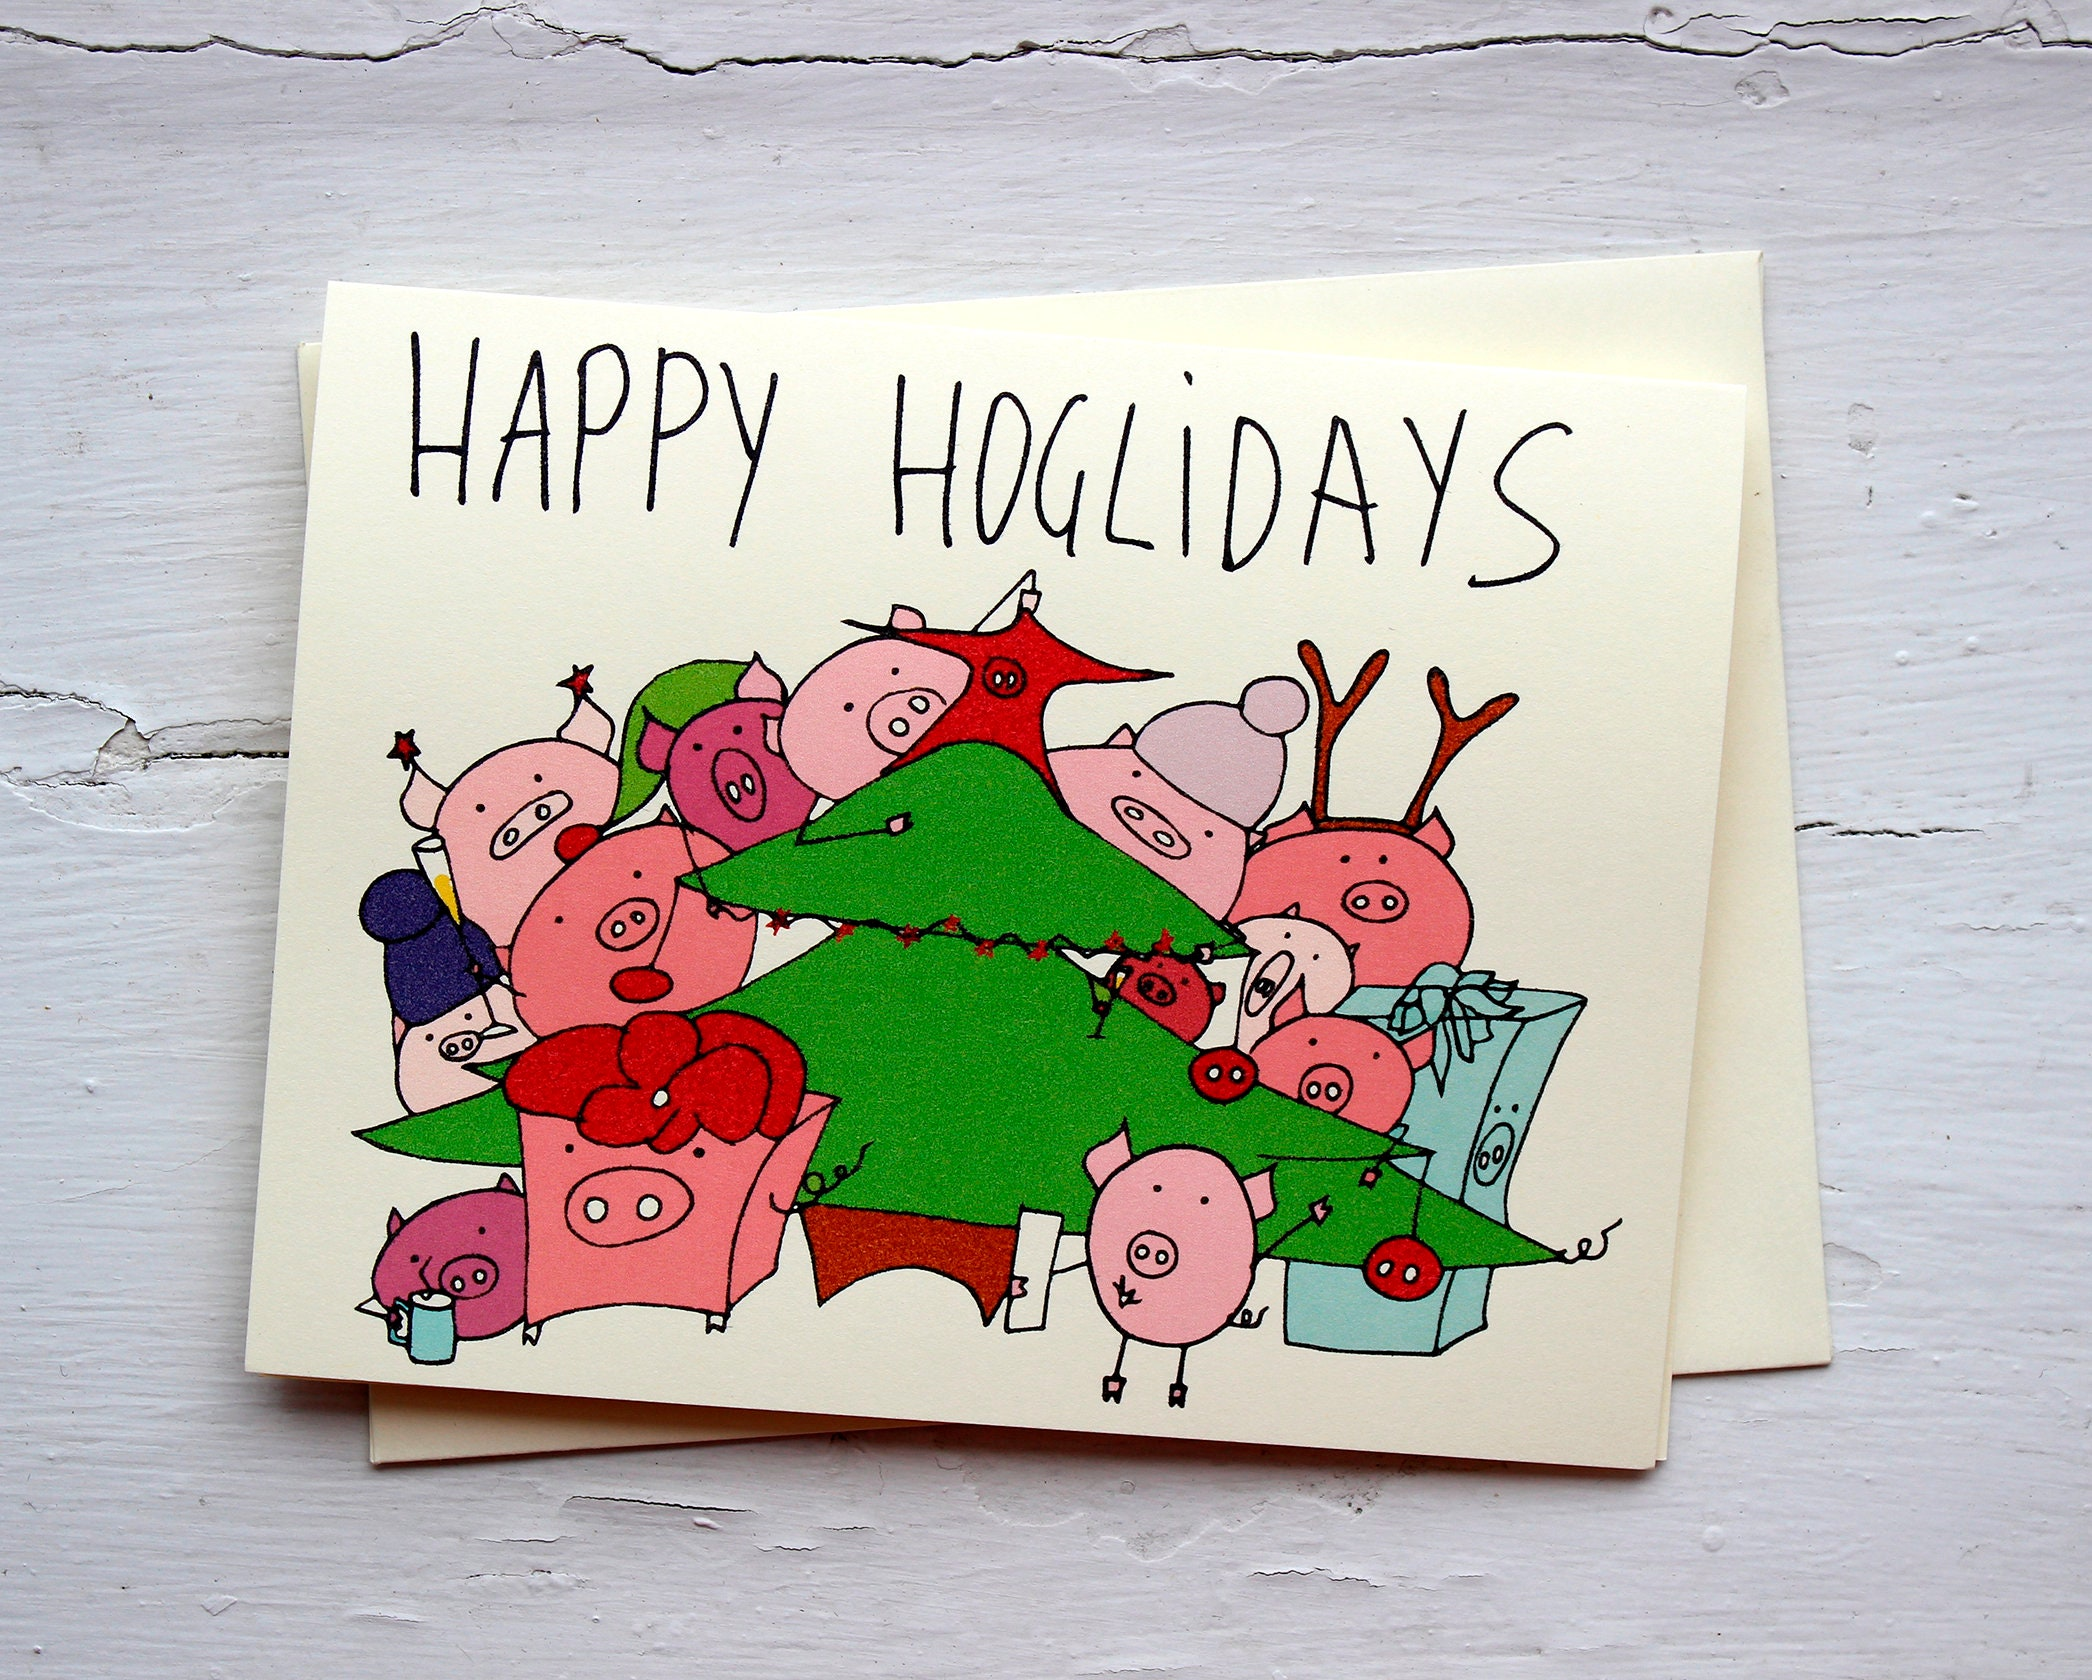 Happy holidays pig pun card funny holiday card with pigs   Etsy